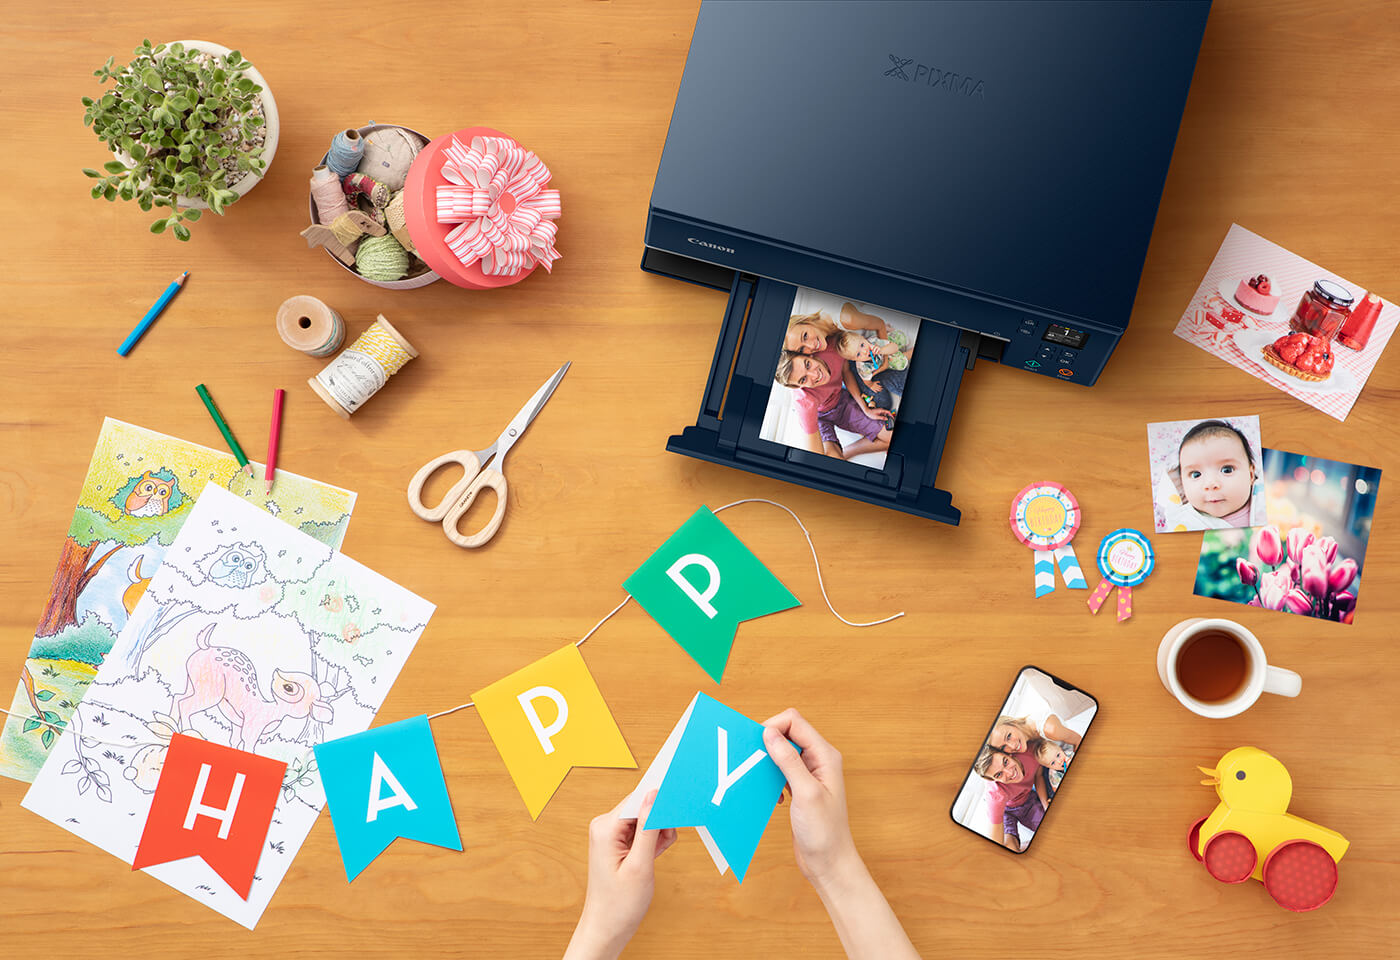 Print images using PIXMA HOME TS6365